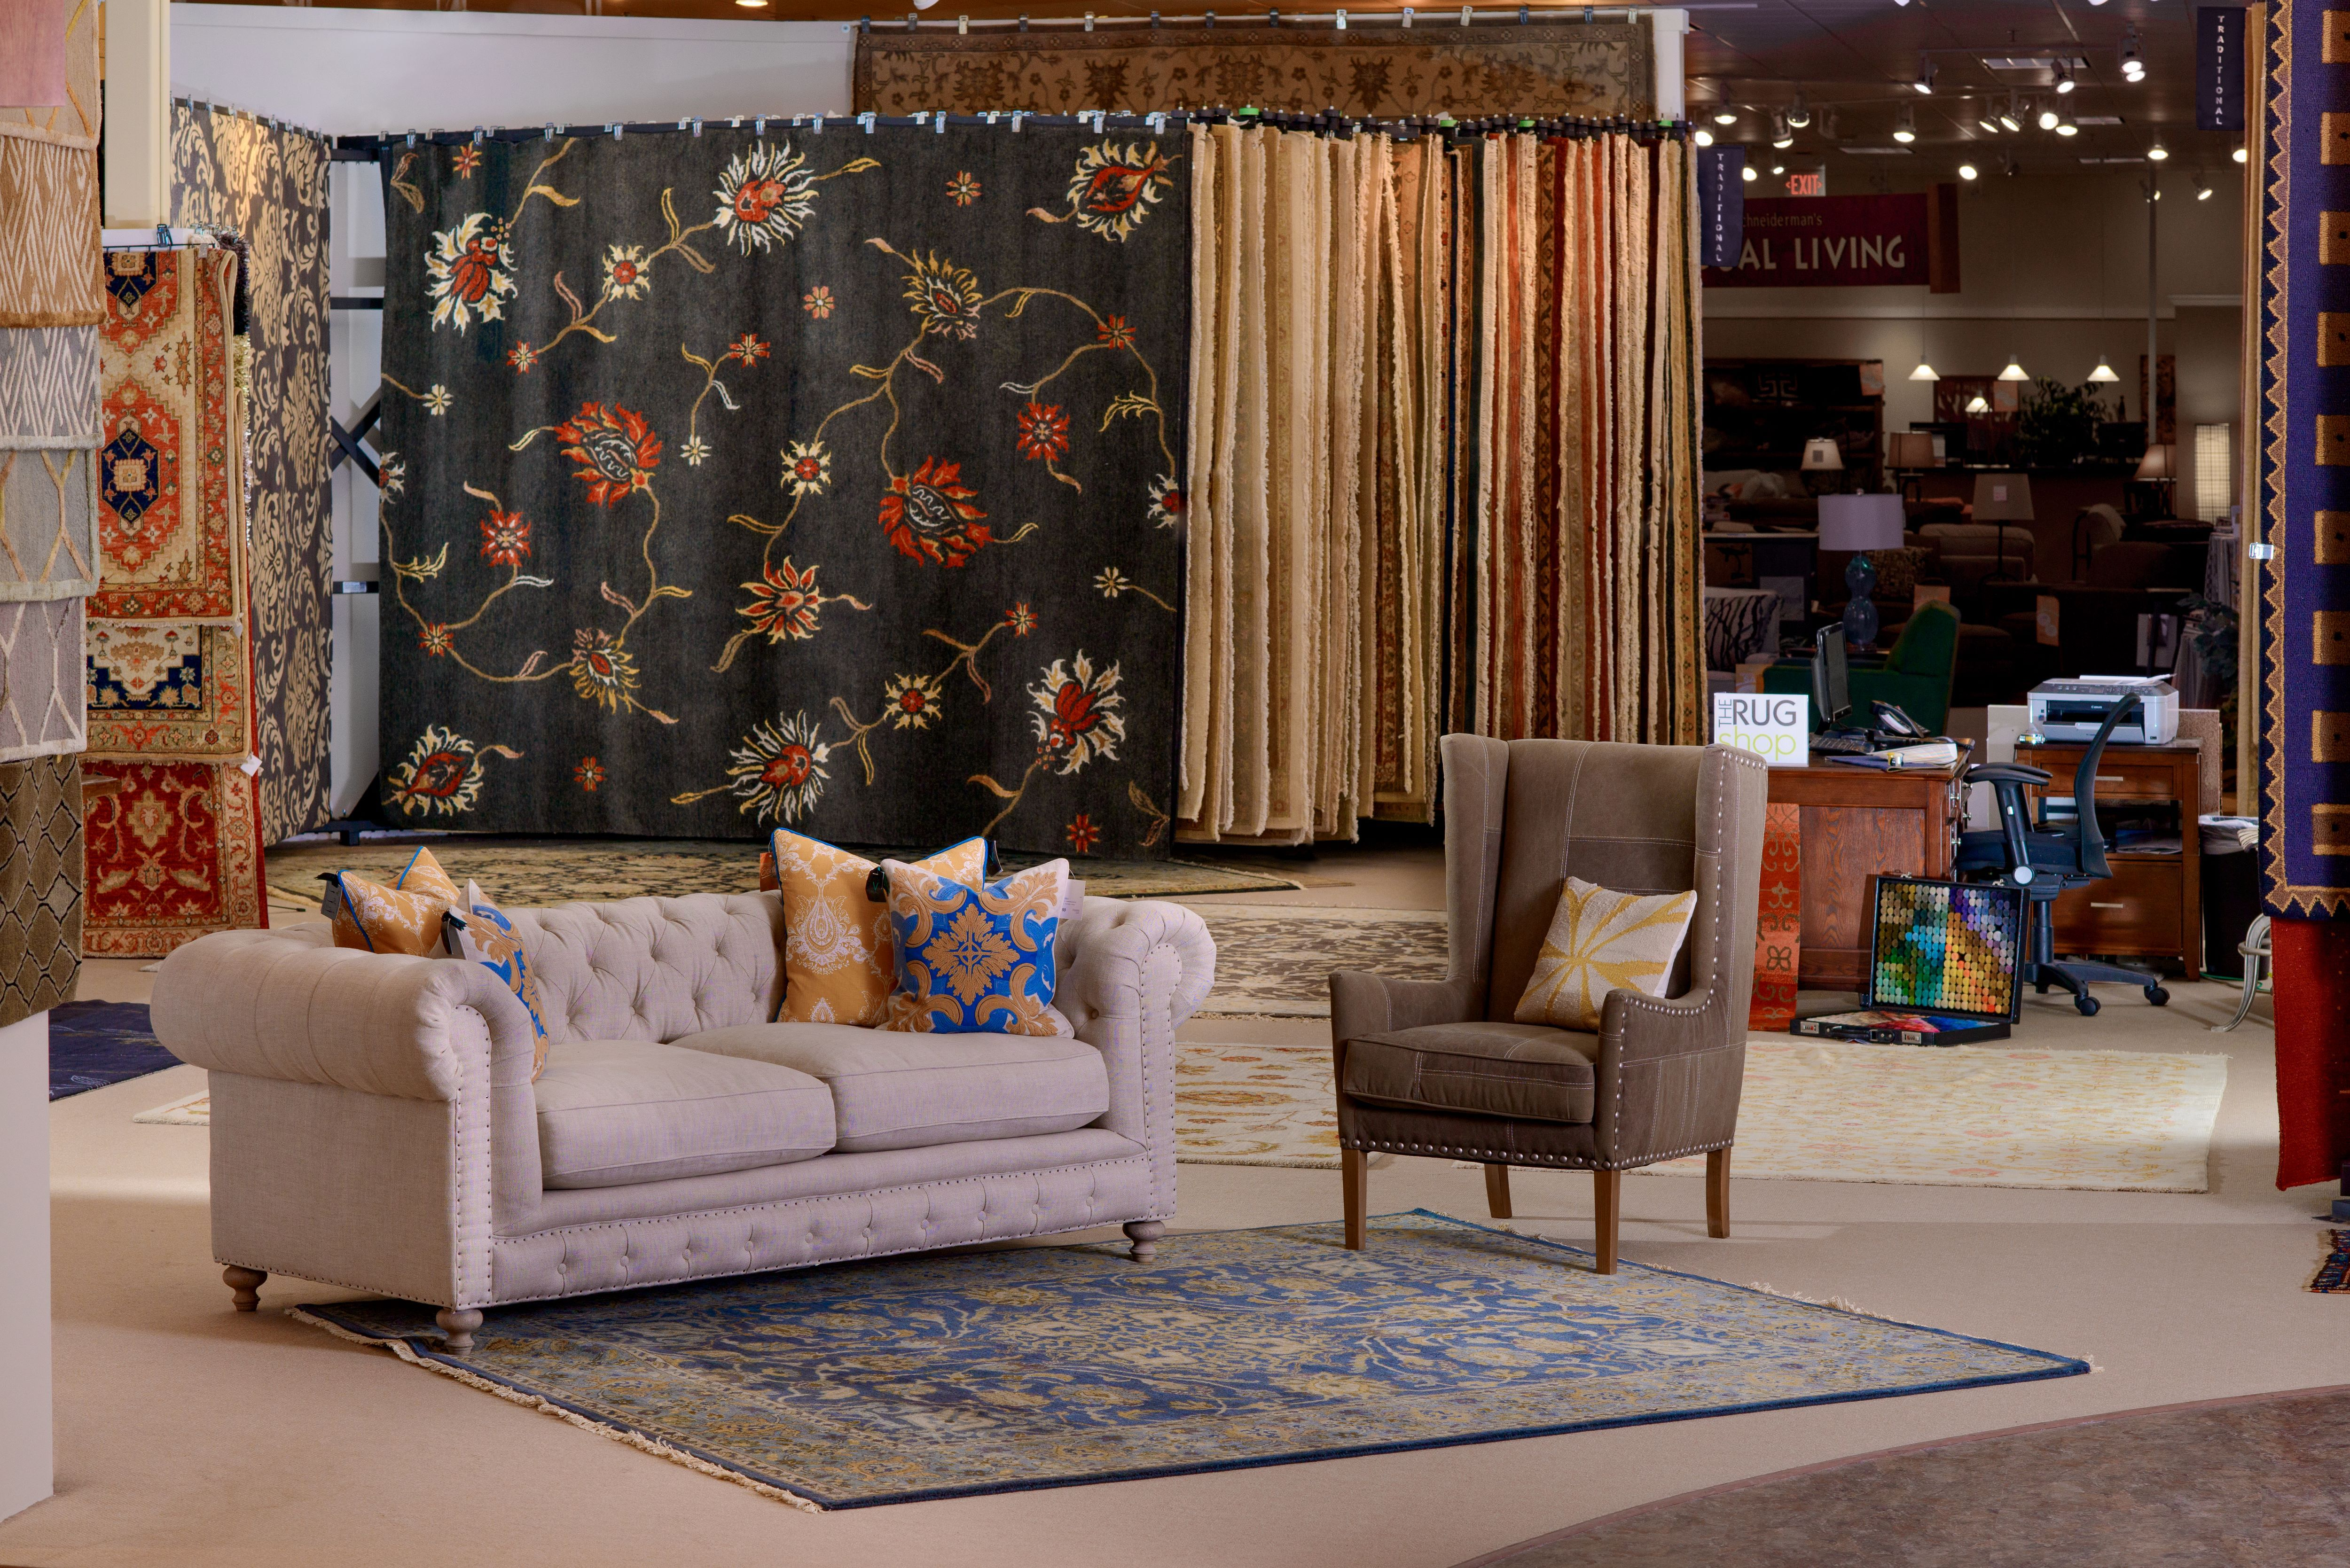 The Rug Shop At Schneidermanu0027s Furniture In Plymouth, Minnesota